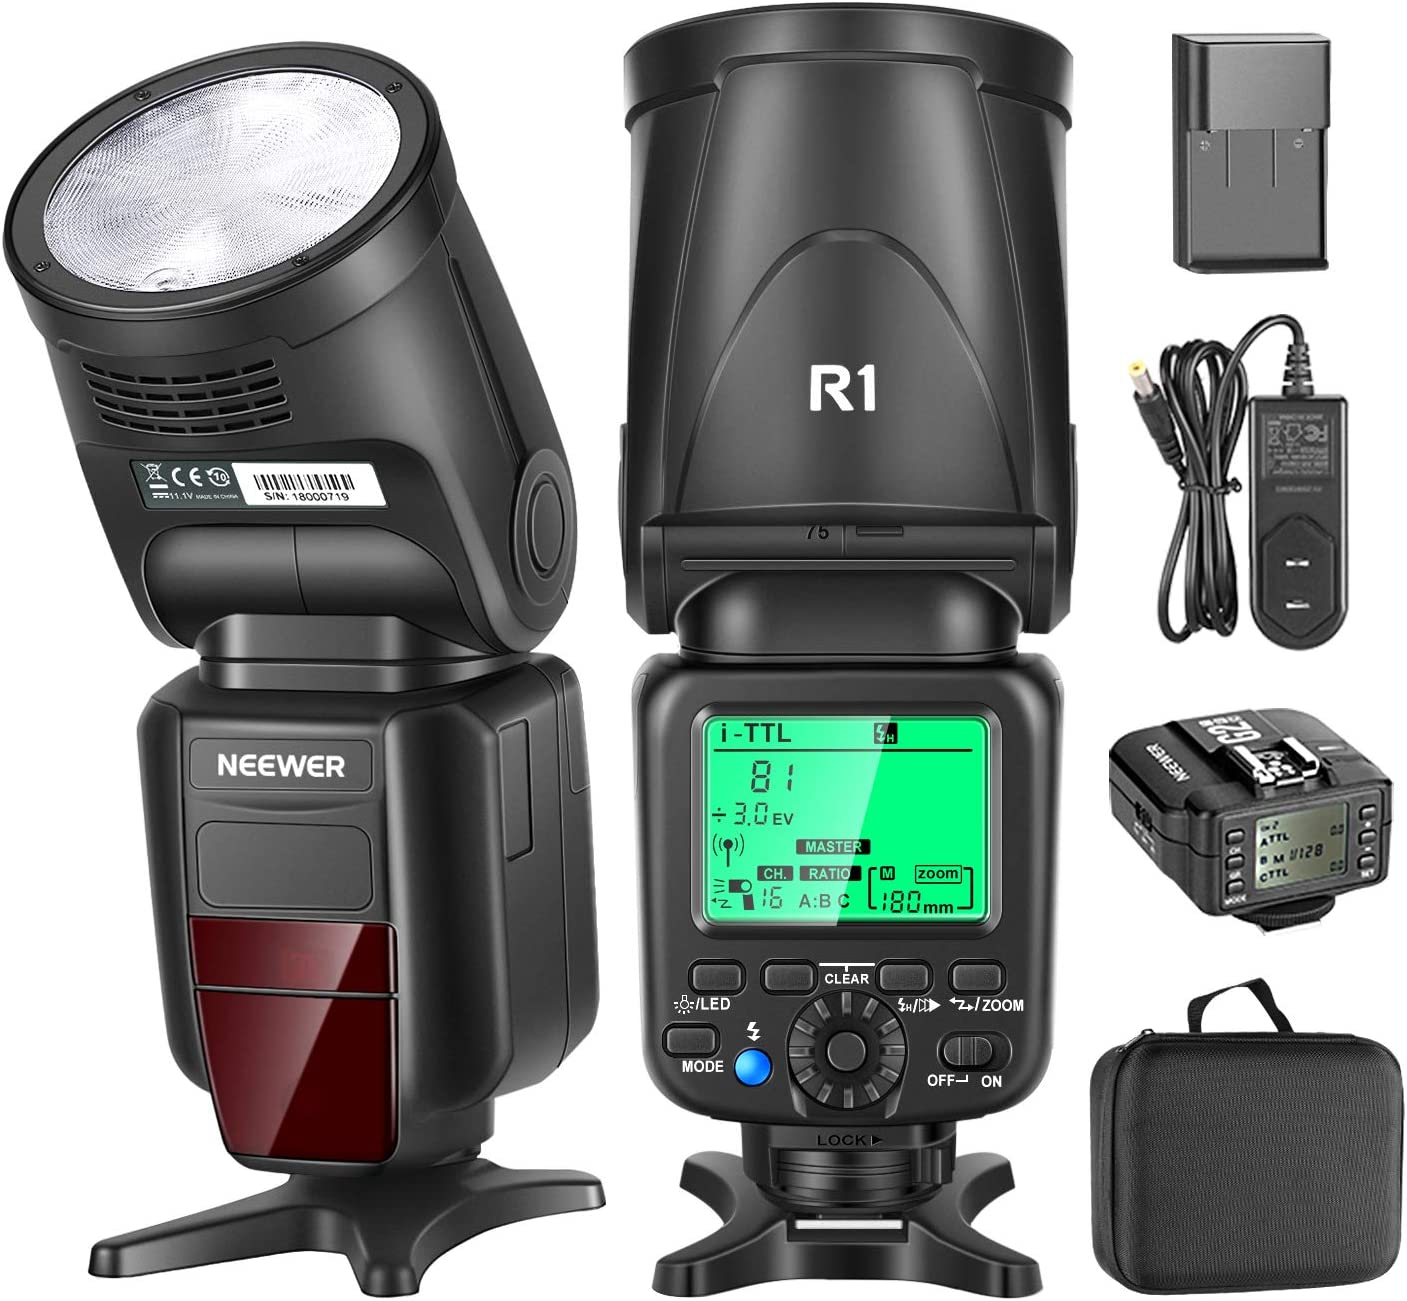 Neewer R1 TTL Flash Speedlite Compatible with Nikon DSLR Cameras, 76Ws 2.4G TTL Round Head, 1/8000s HSS, 2.1s Recycle Time, 11.1V/2000mAh Lithium Battery, 500 Full Power Shots, 2W LED Modeling Lamp